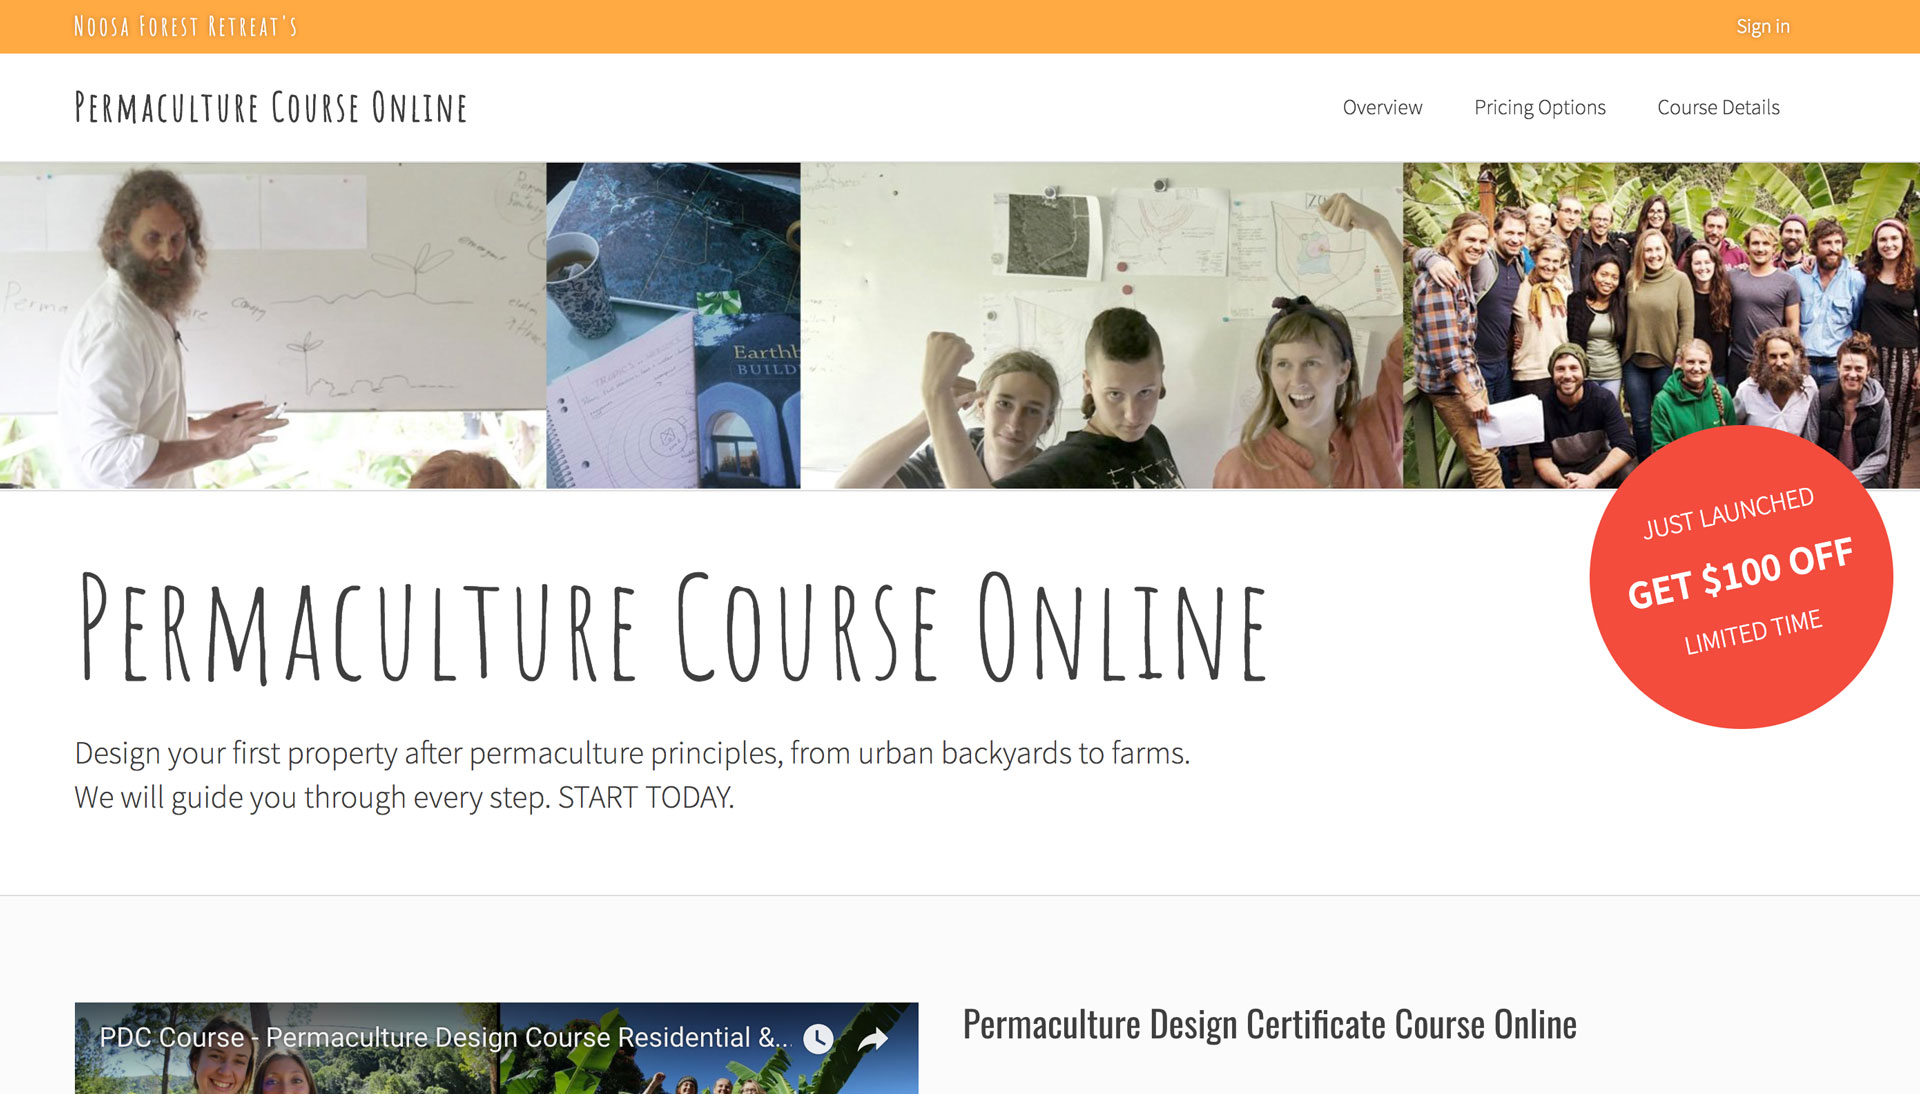 Permaculture Course Online - Homepage Screenshot